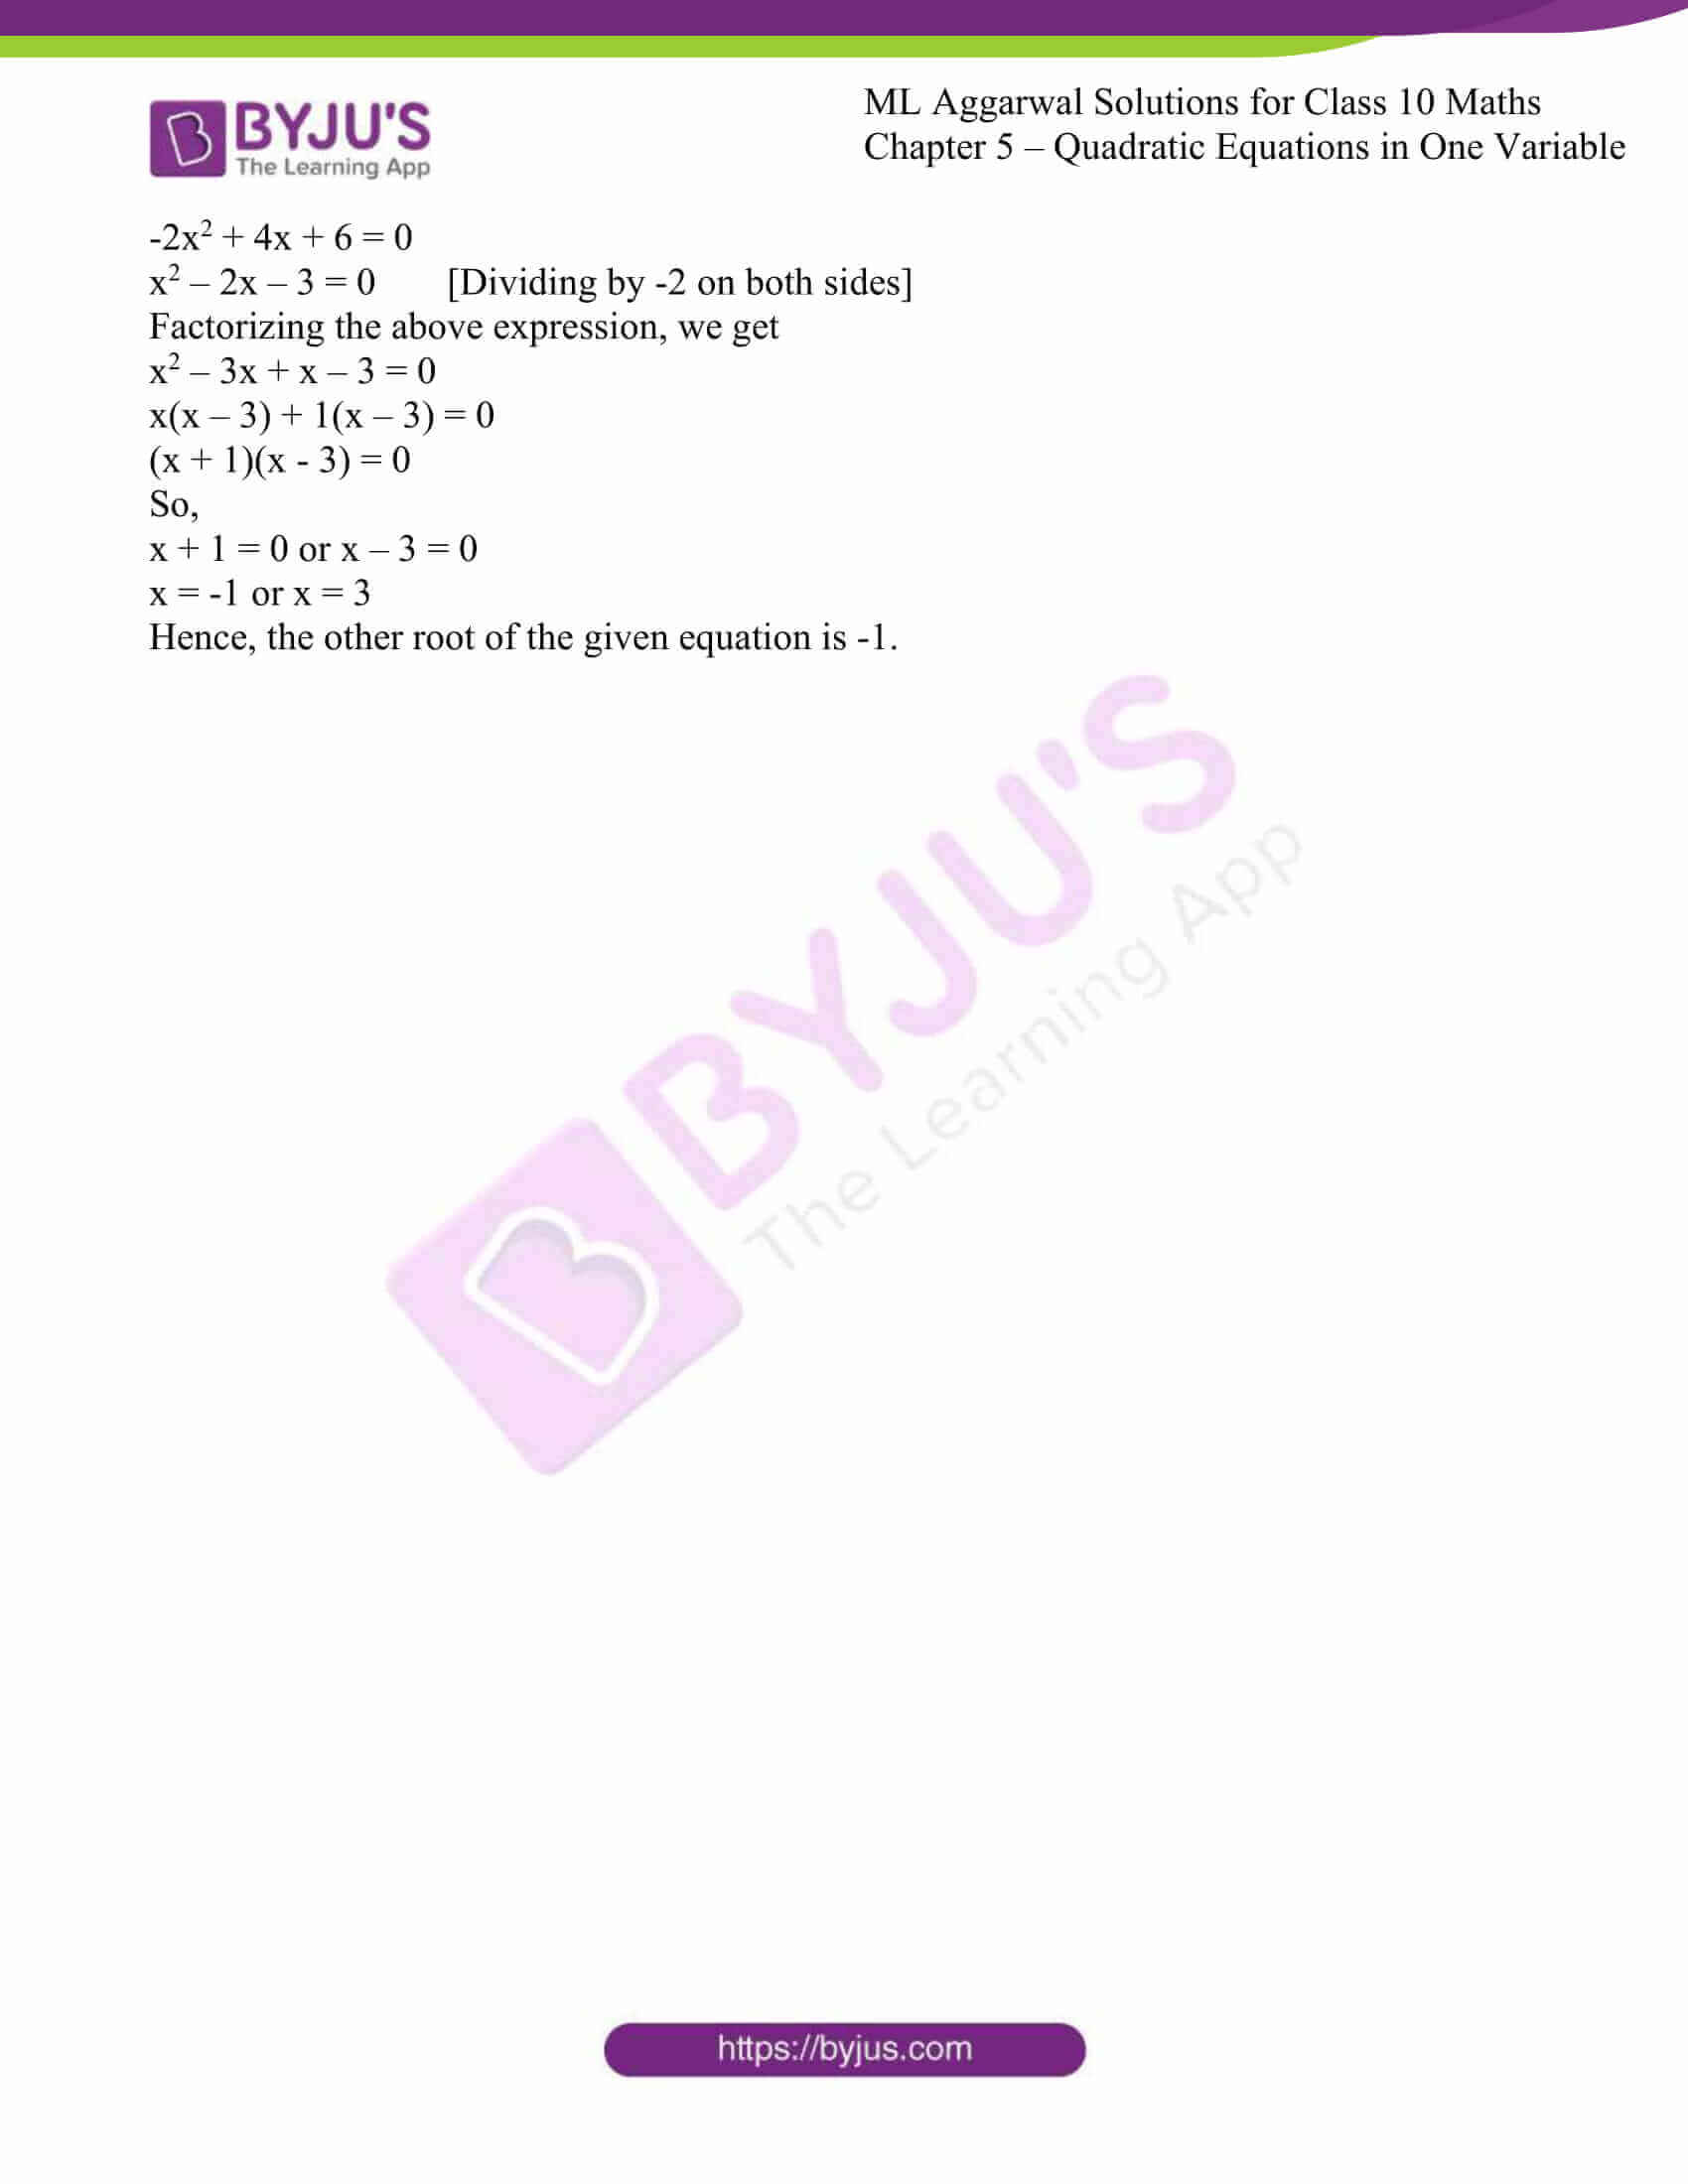 ml aggarwal solutions class 10 maths chapter 5 22